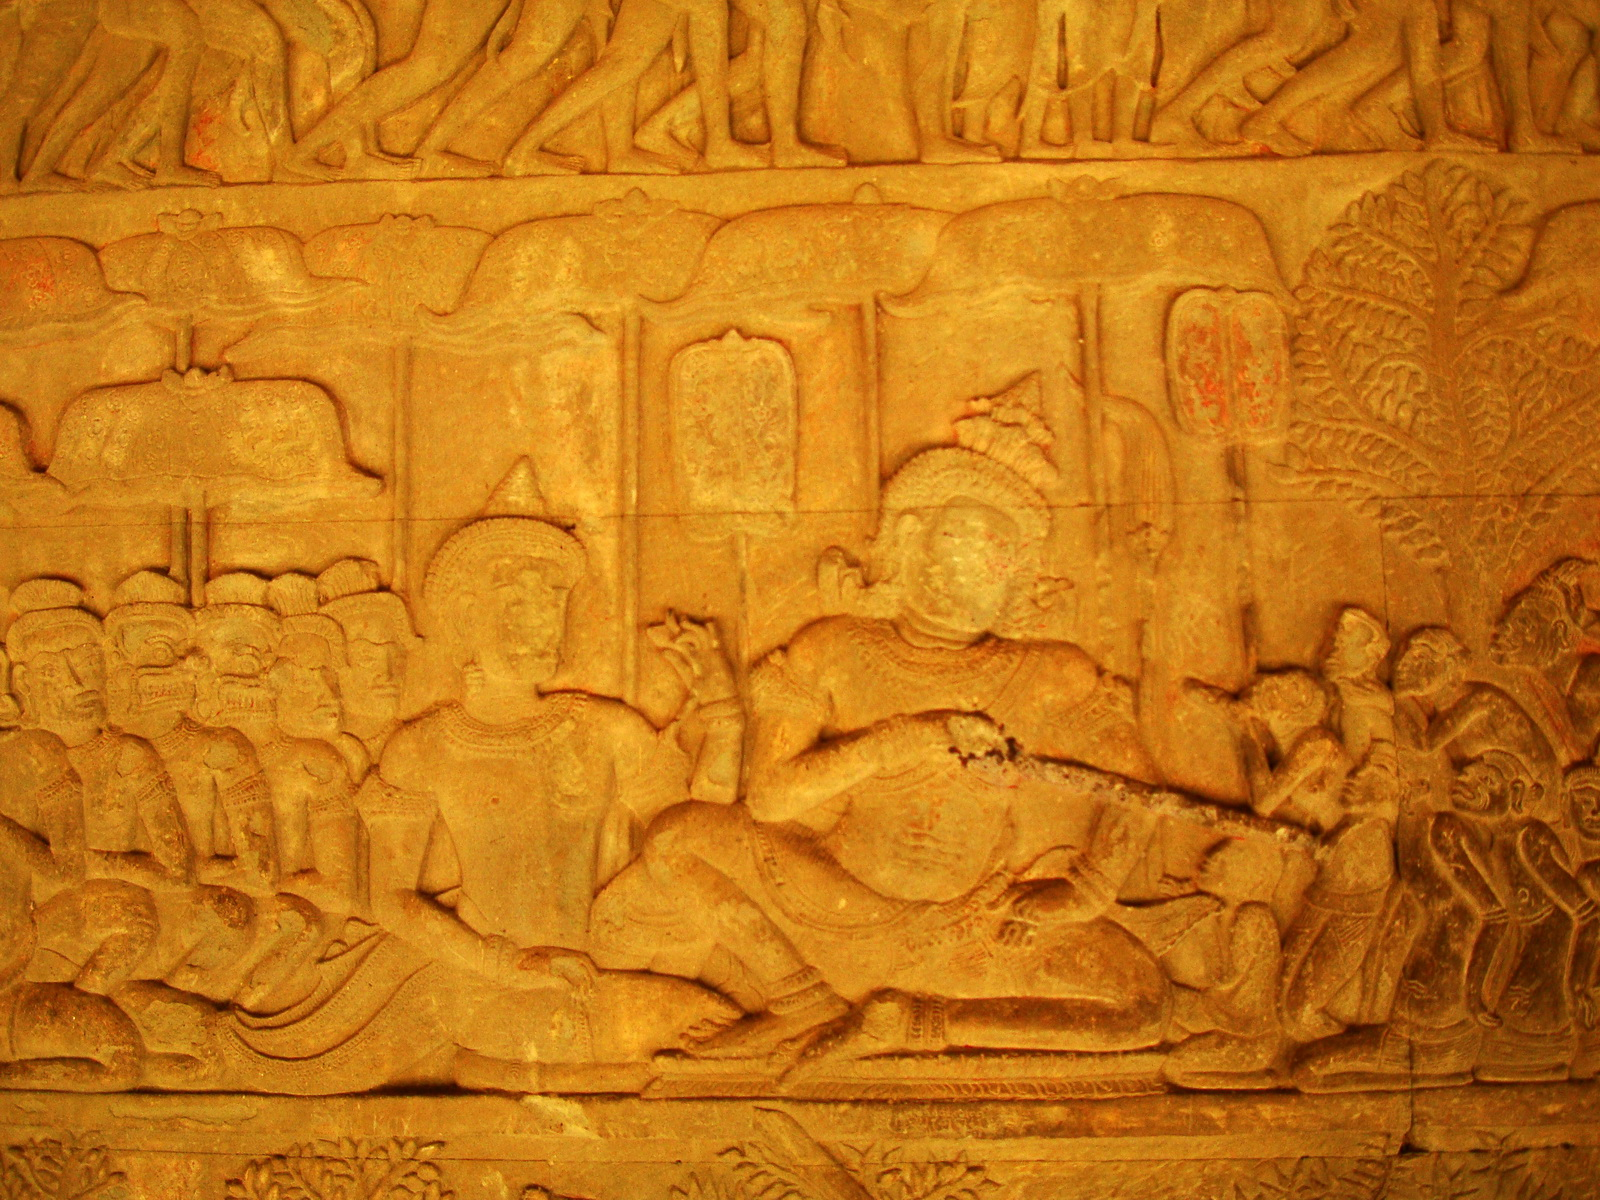 Angkor Wat Bas relief S Gallery E Wing Heavens and Hells 62